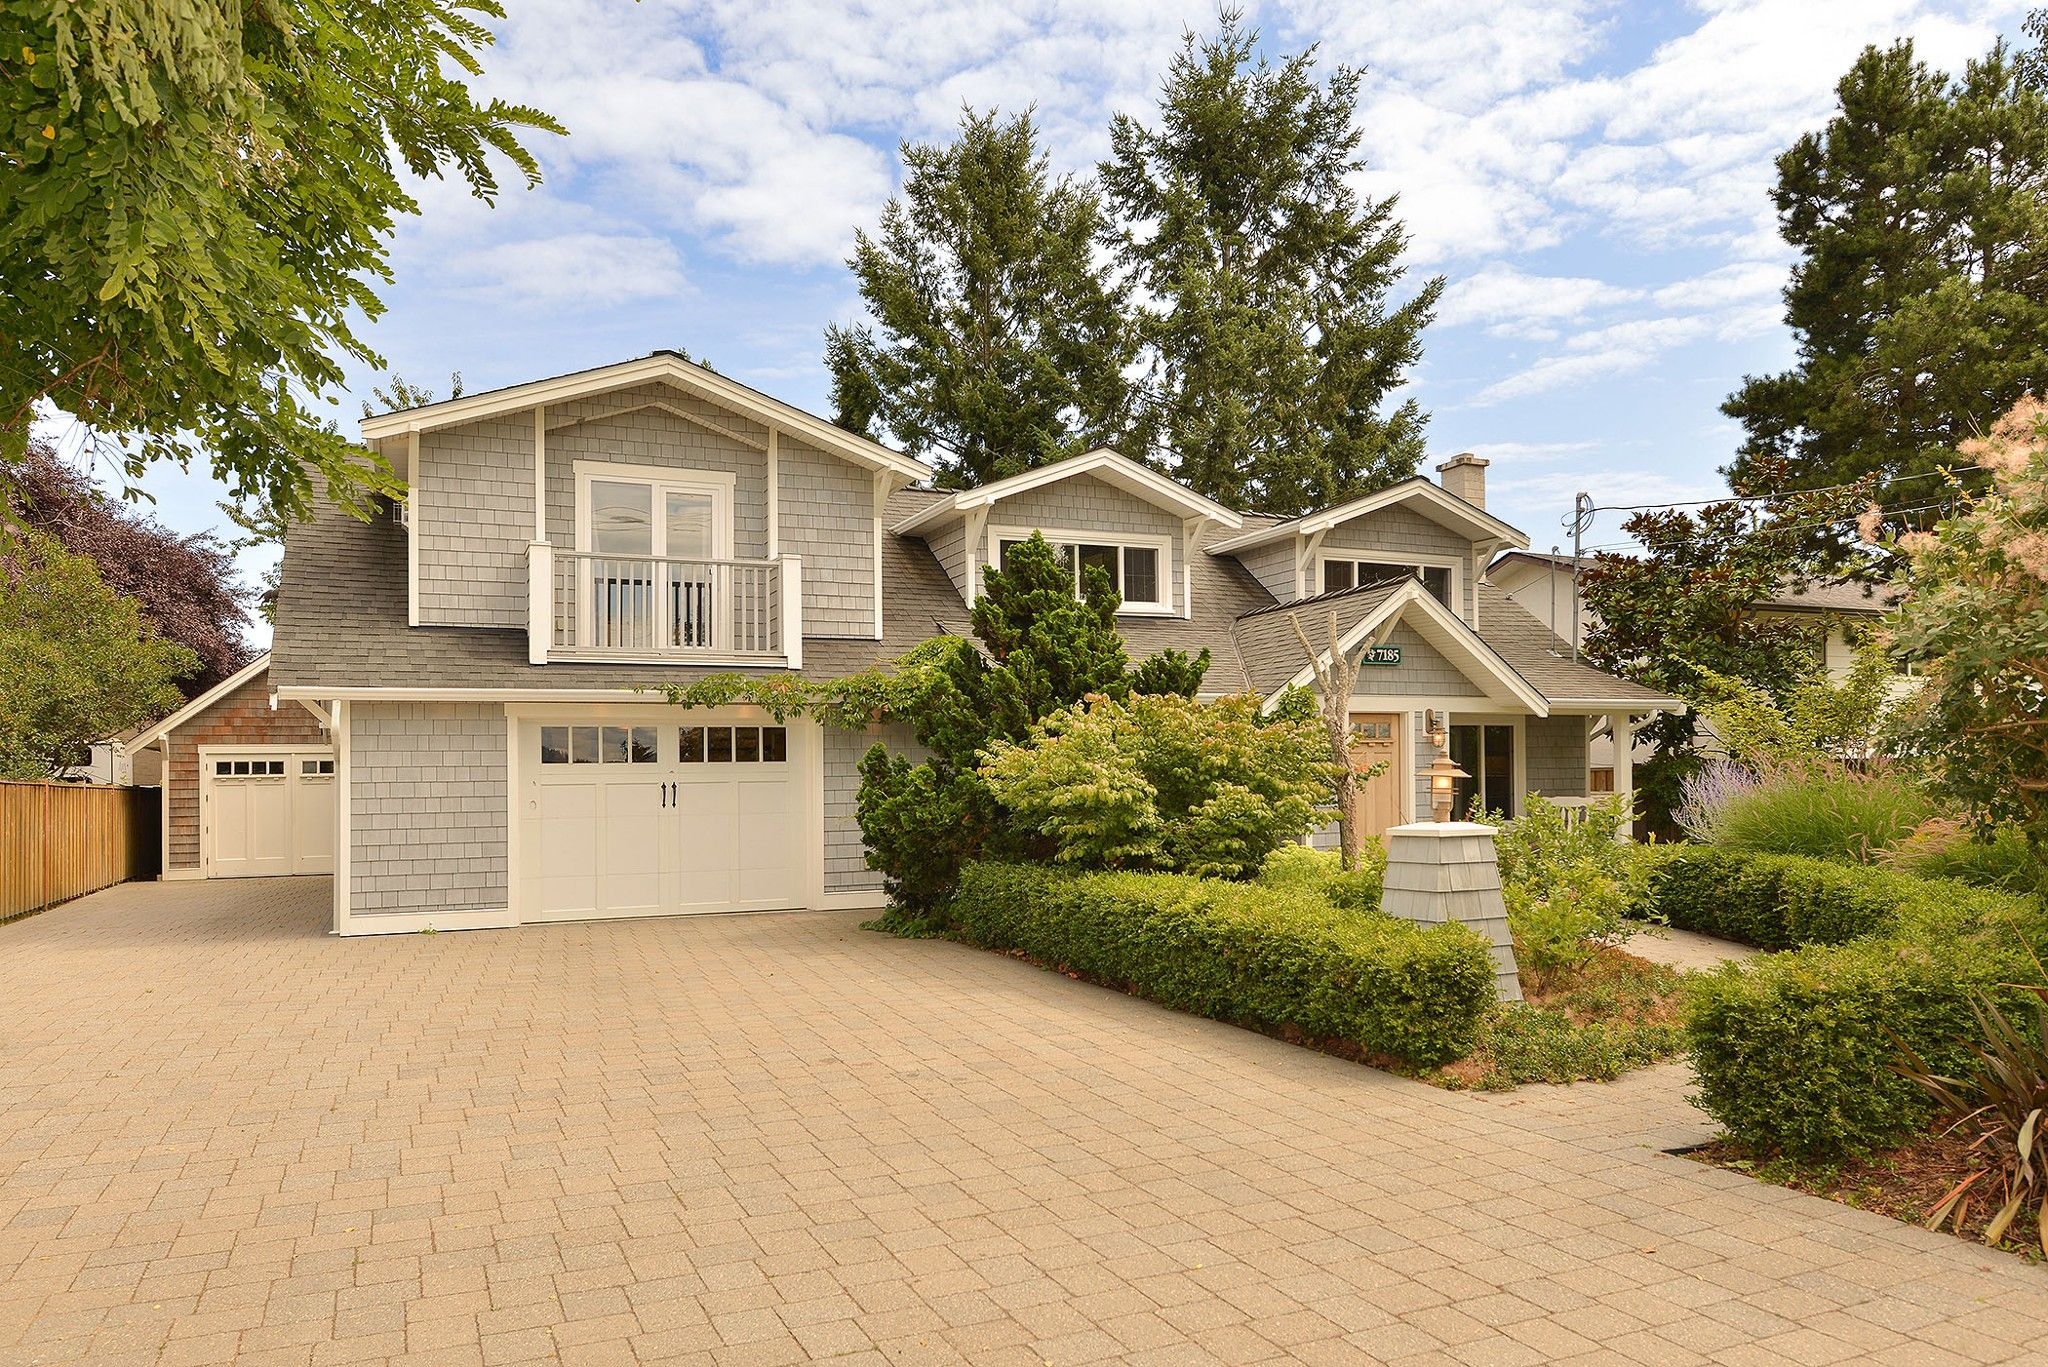 Main Photo: 7185 SEABROOK Road in VICTORIA: CS Saanichton House for sale (Central Saanich)